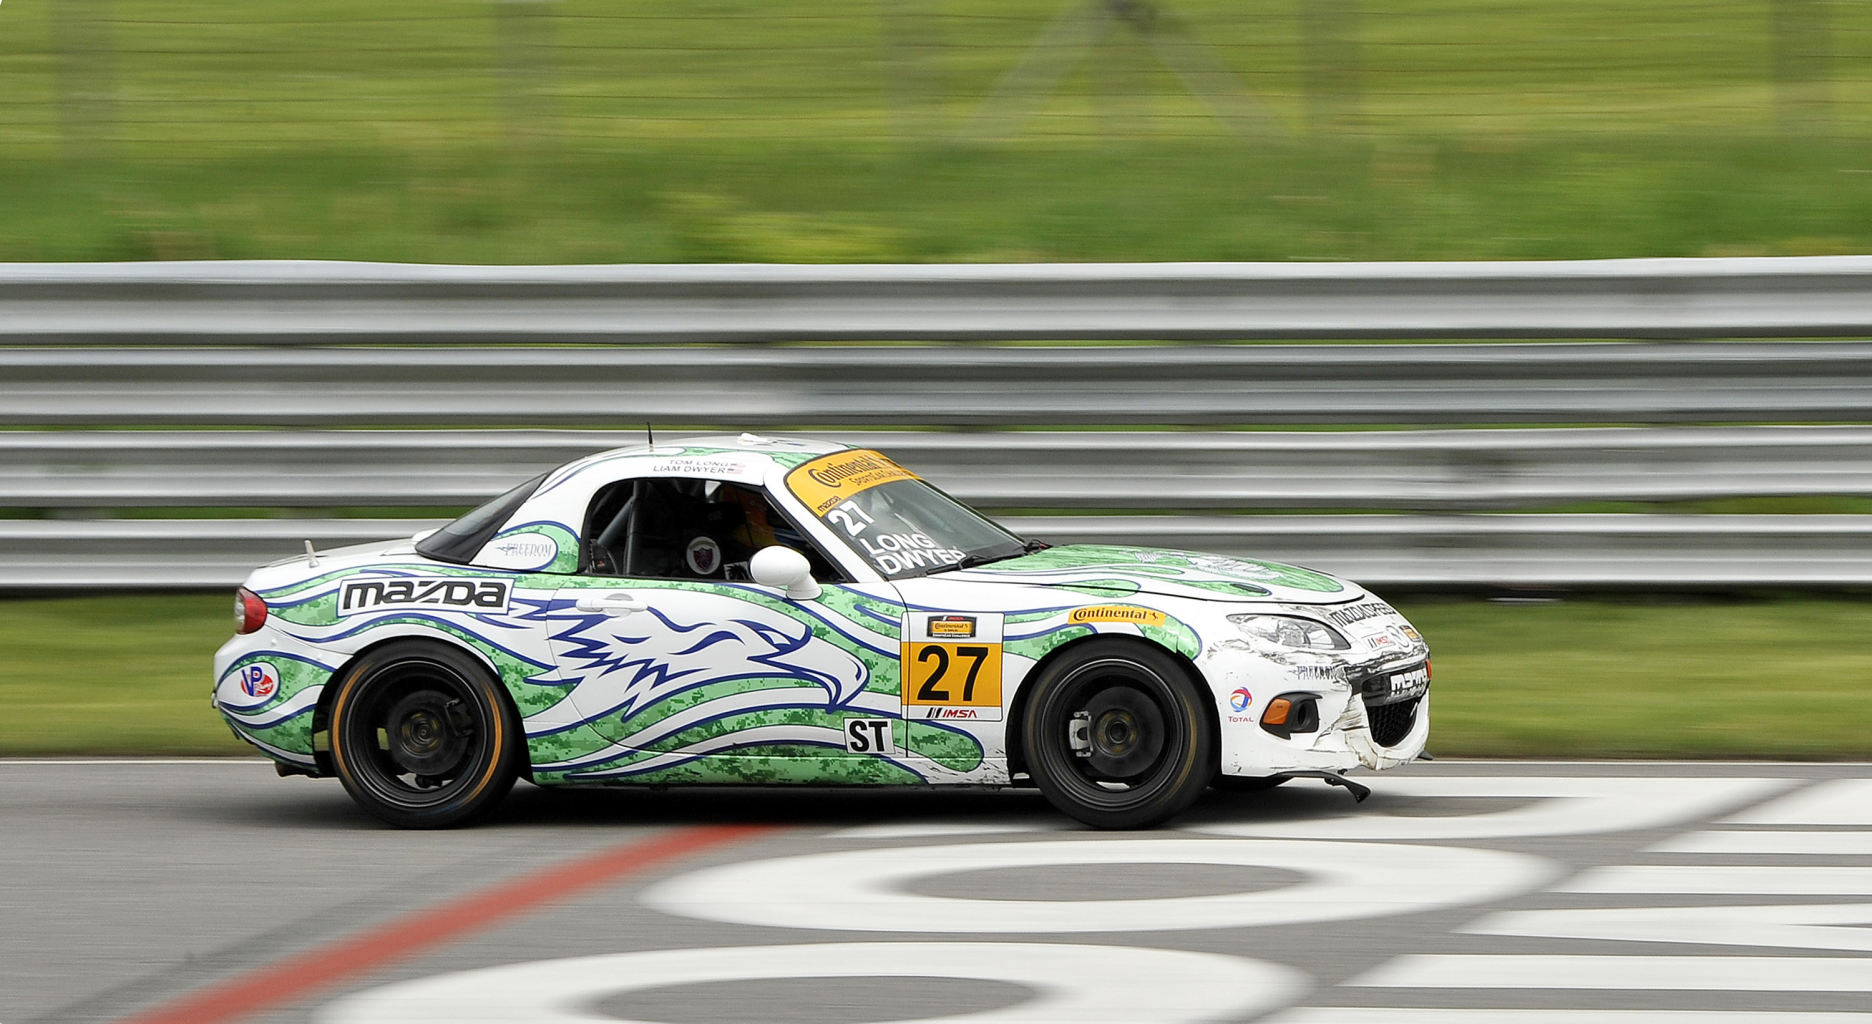 Photo USA for IMSA, U.S. Marine Staff Sgt. Liam Dwyer drives his car